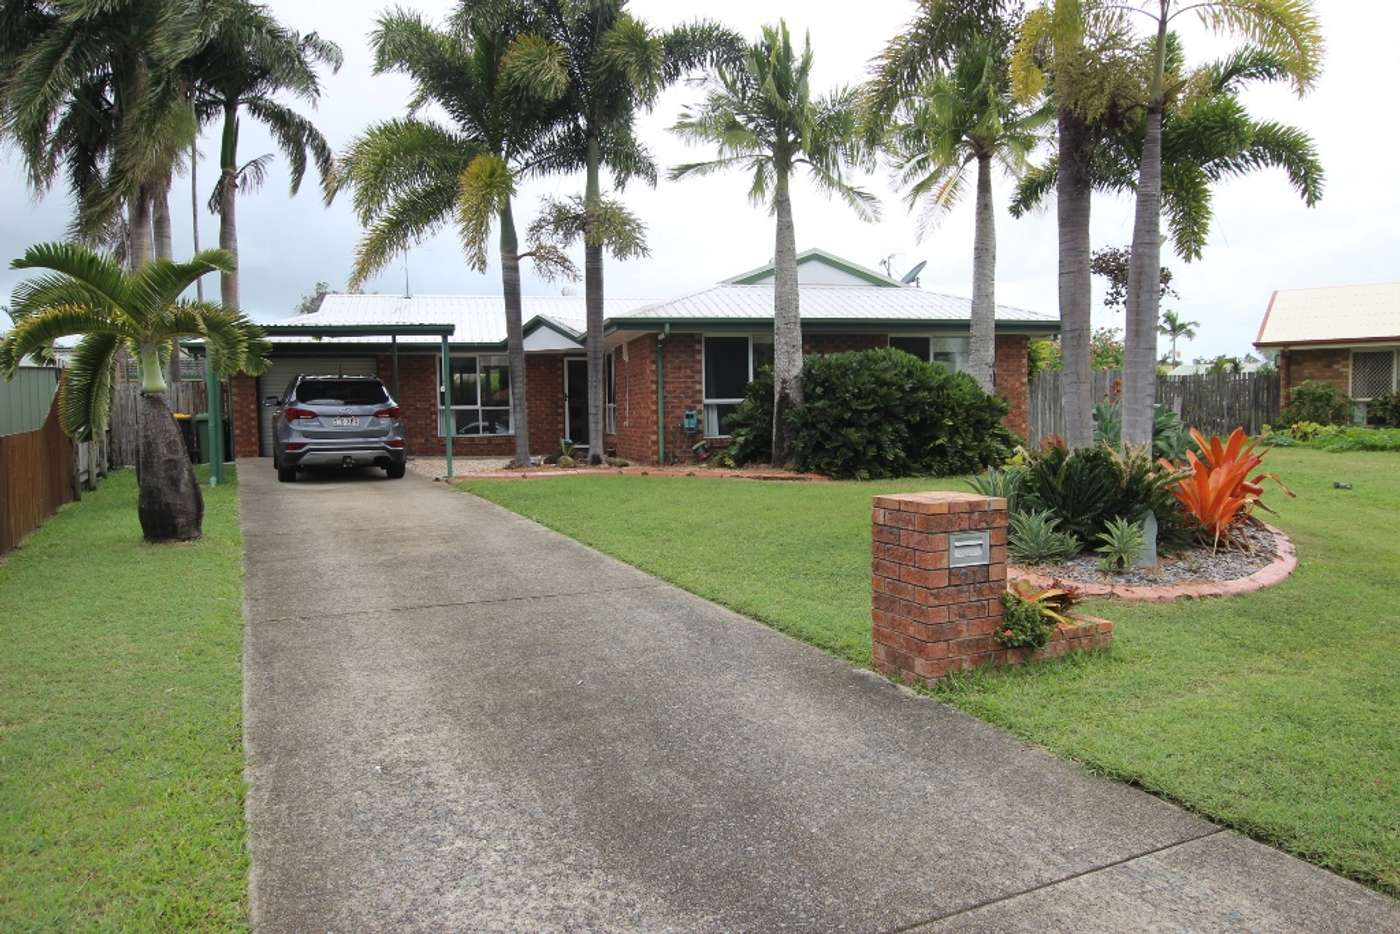 Main view of Homely house listing, 21 Avocado Court, Beaconsfield QLD 4740